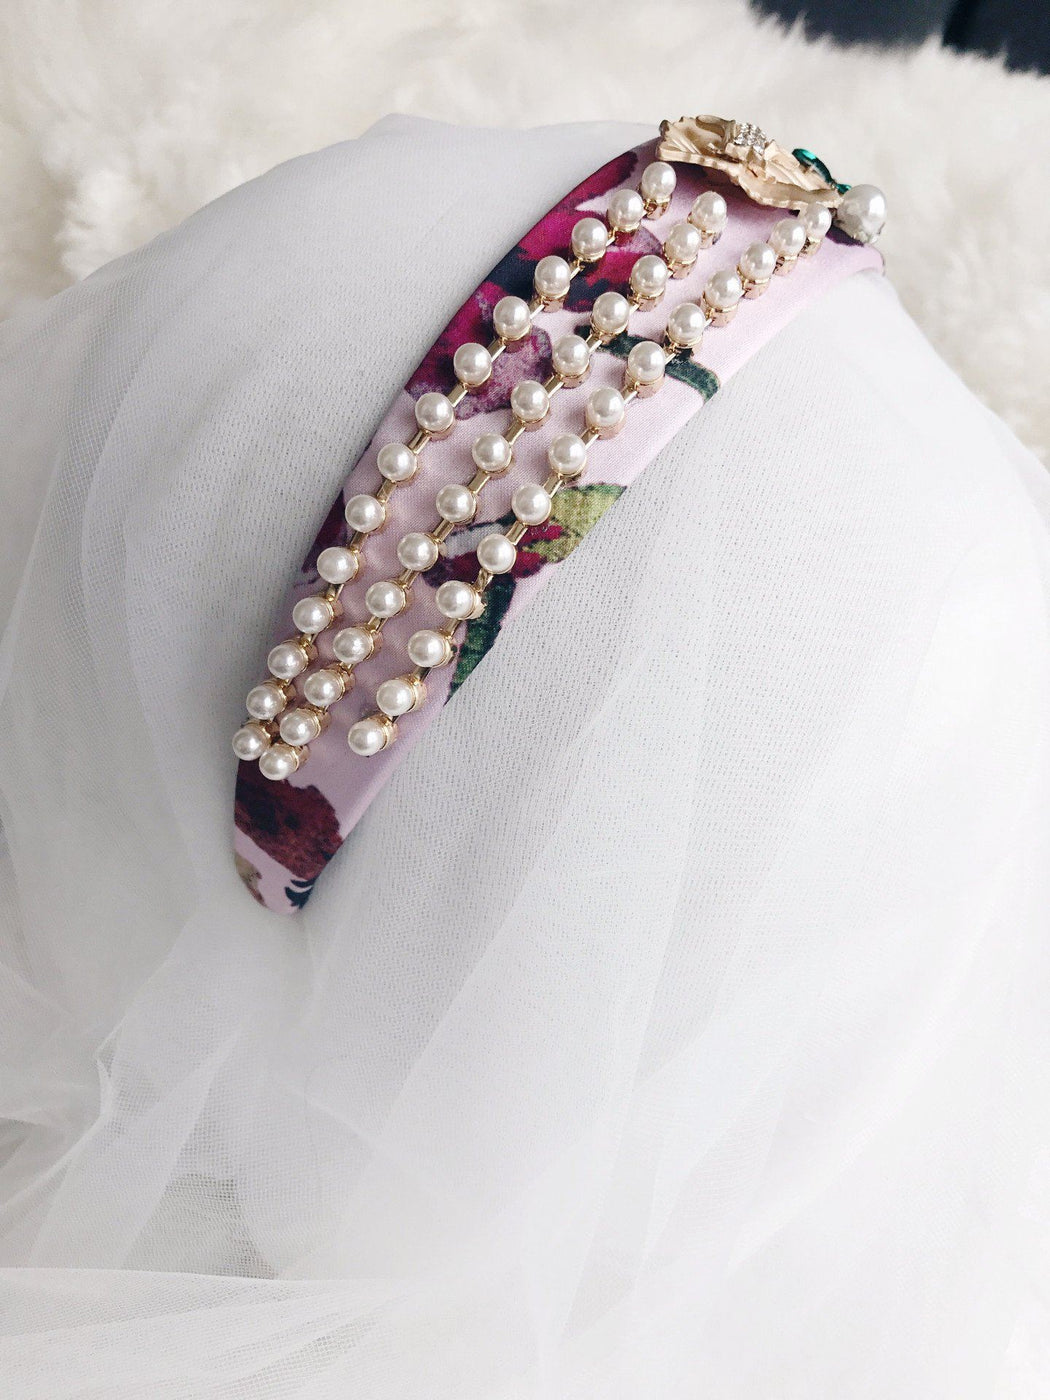 Blair waldorf Embellished Headband hairband gossip girl hair accessory formal bridal luxe hairstyle